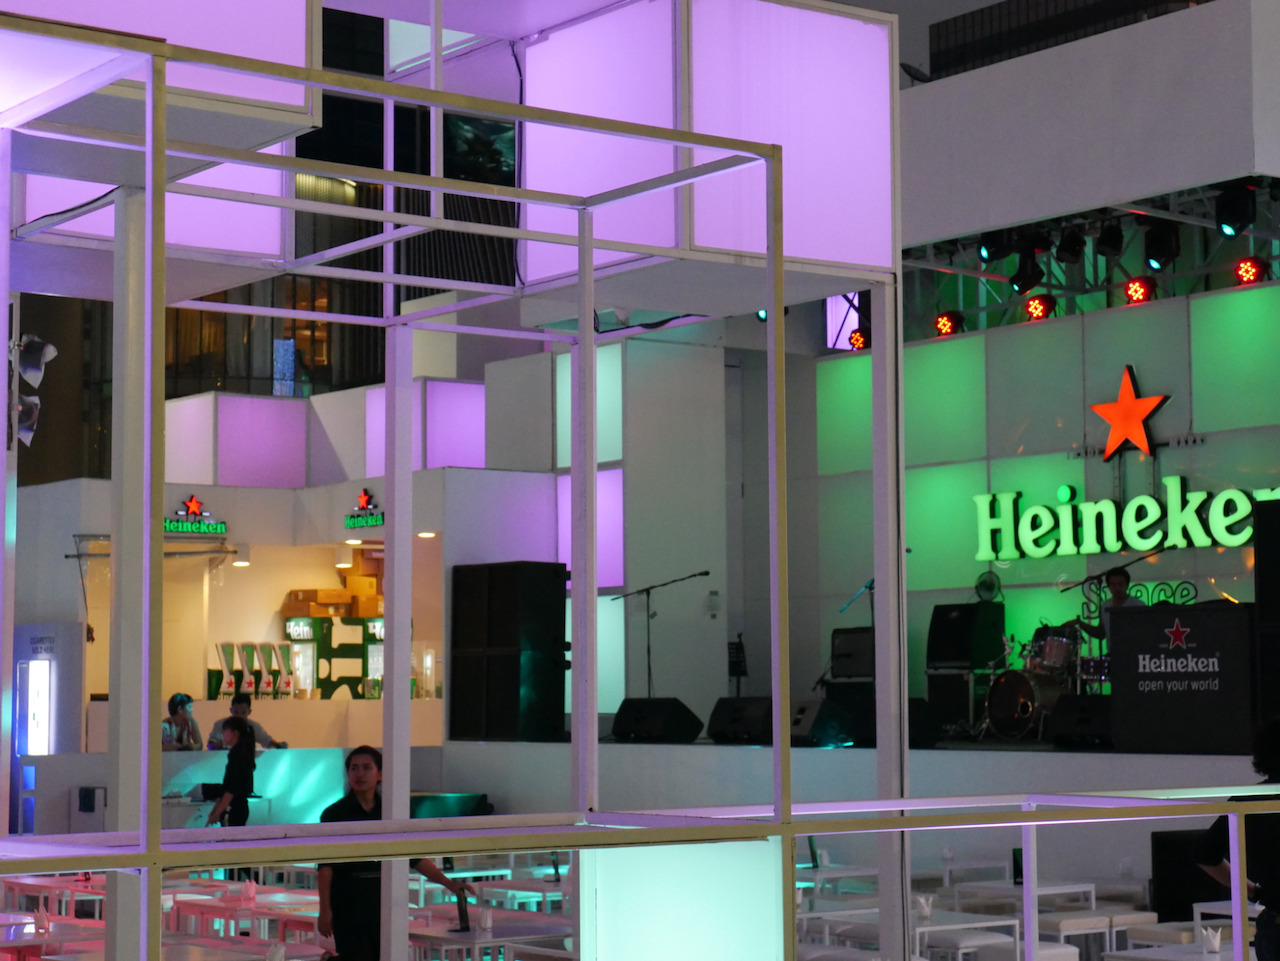 How Heineken Plans To Use Location Ads, Beacons, And Shazam To